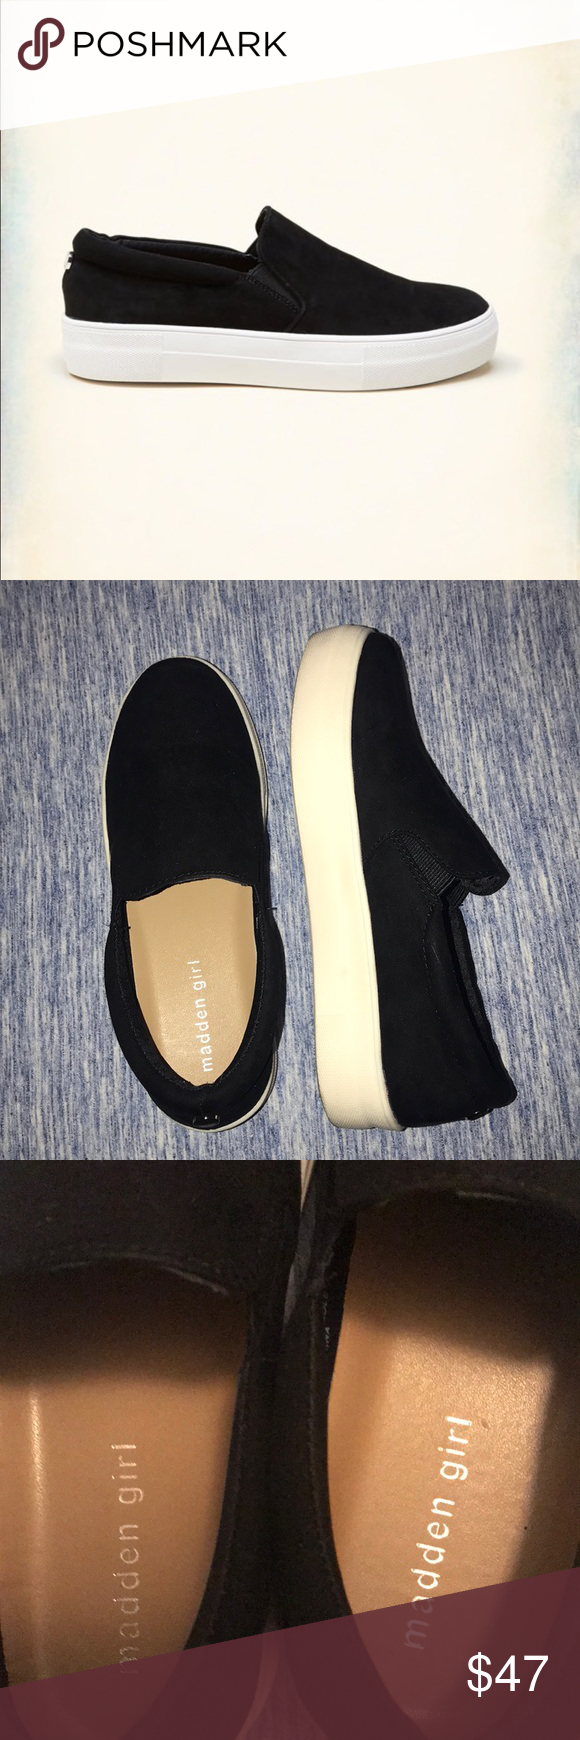 ed19fd388e6 Madden Girl Platform Sneakers Only worn once. Great condition. Madden Girl  Shoes Flats   Loafers